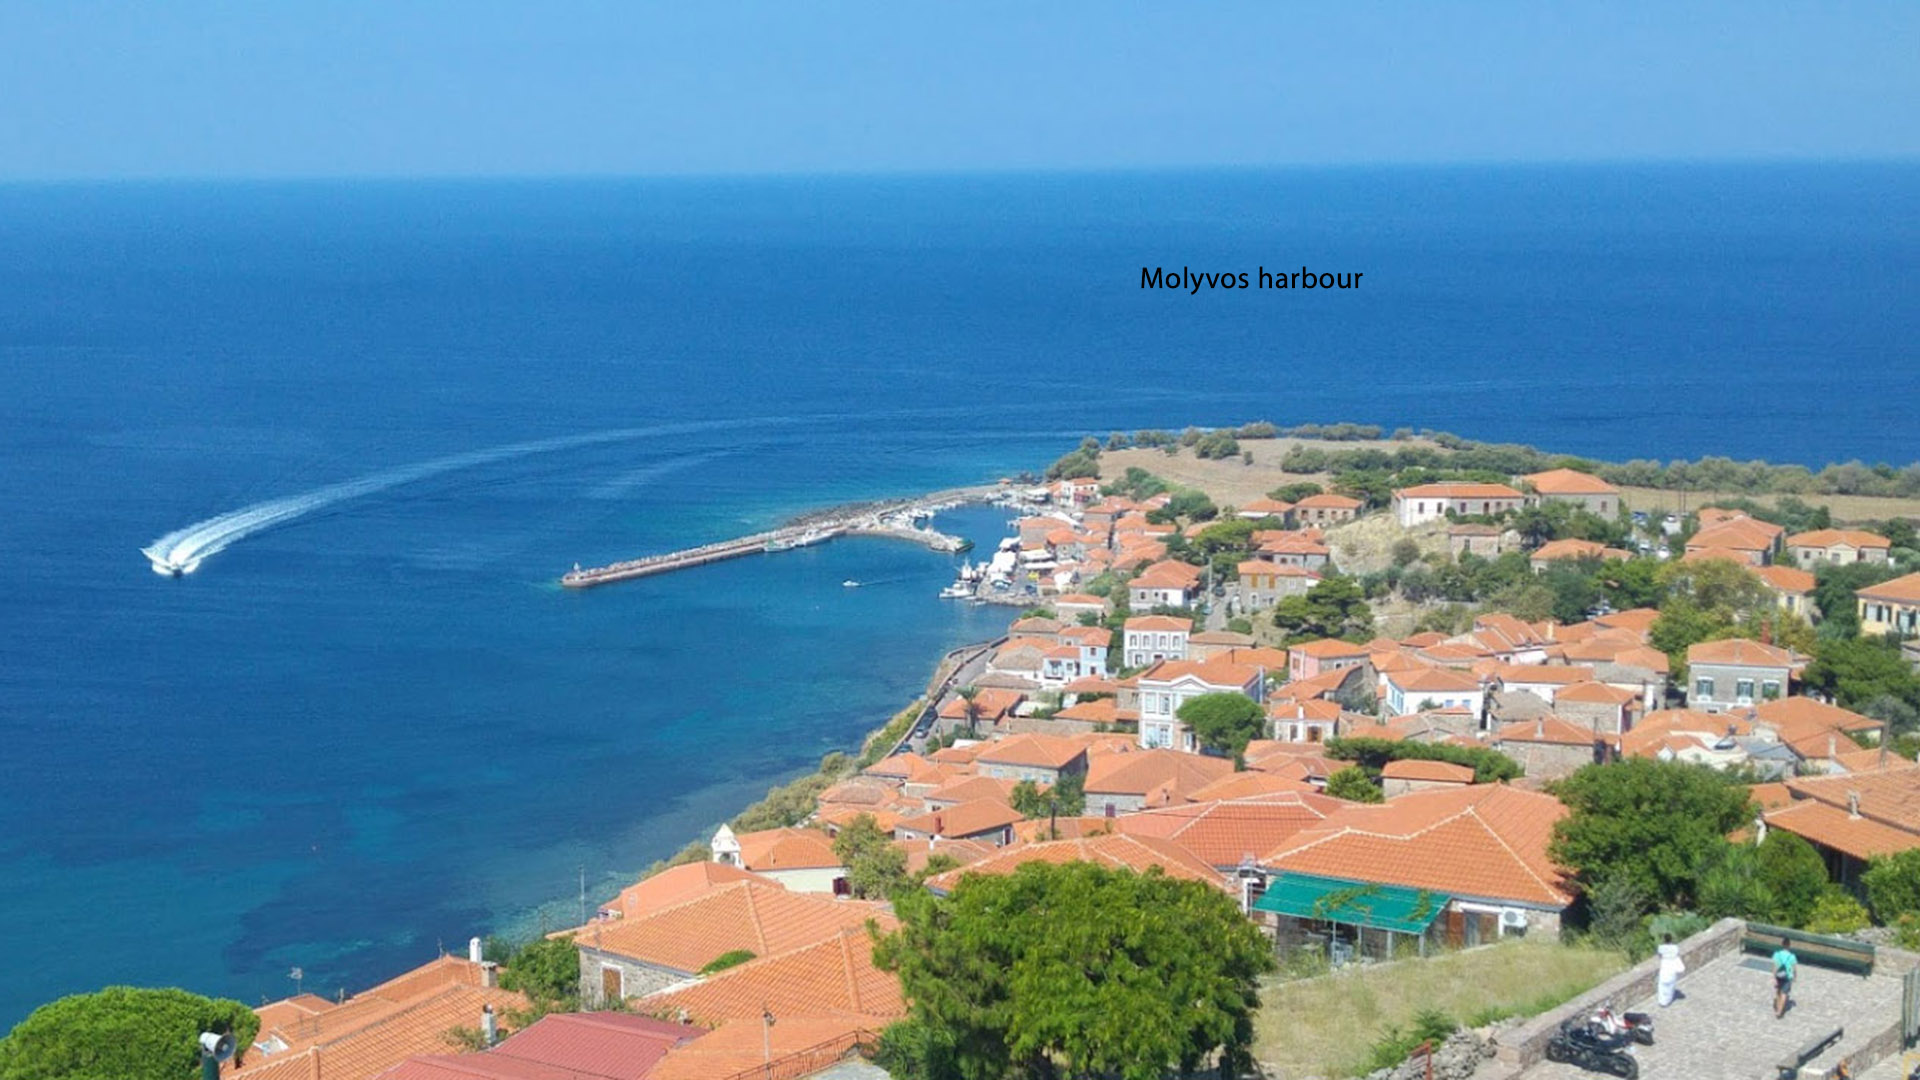 Molyvos harbour (1)